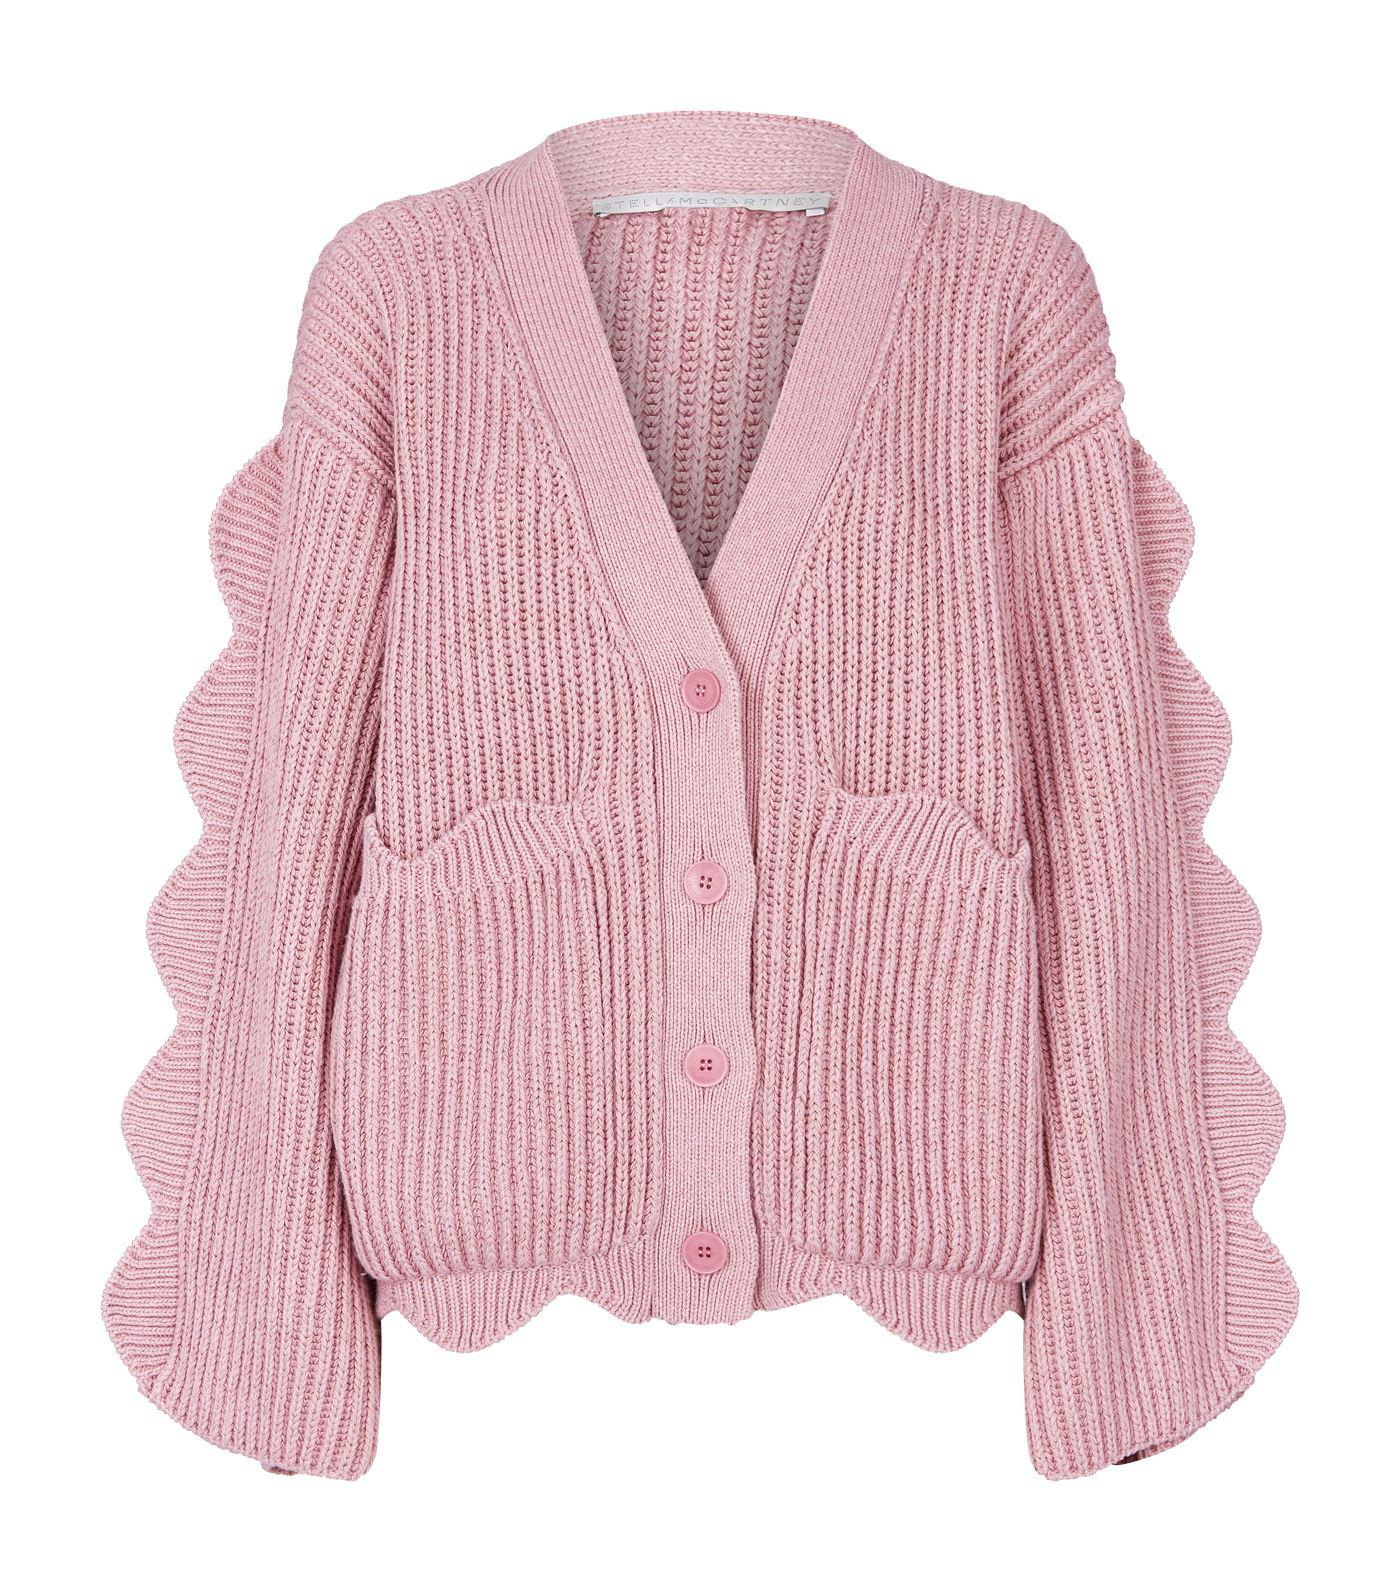 f82229cd82b4 Stella McCartney. Women s Pink Knitted Button Down Scalloped Detail Cardigan